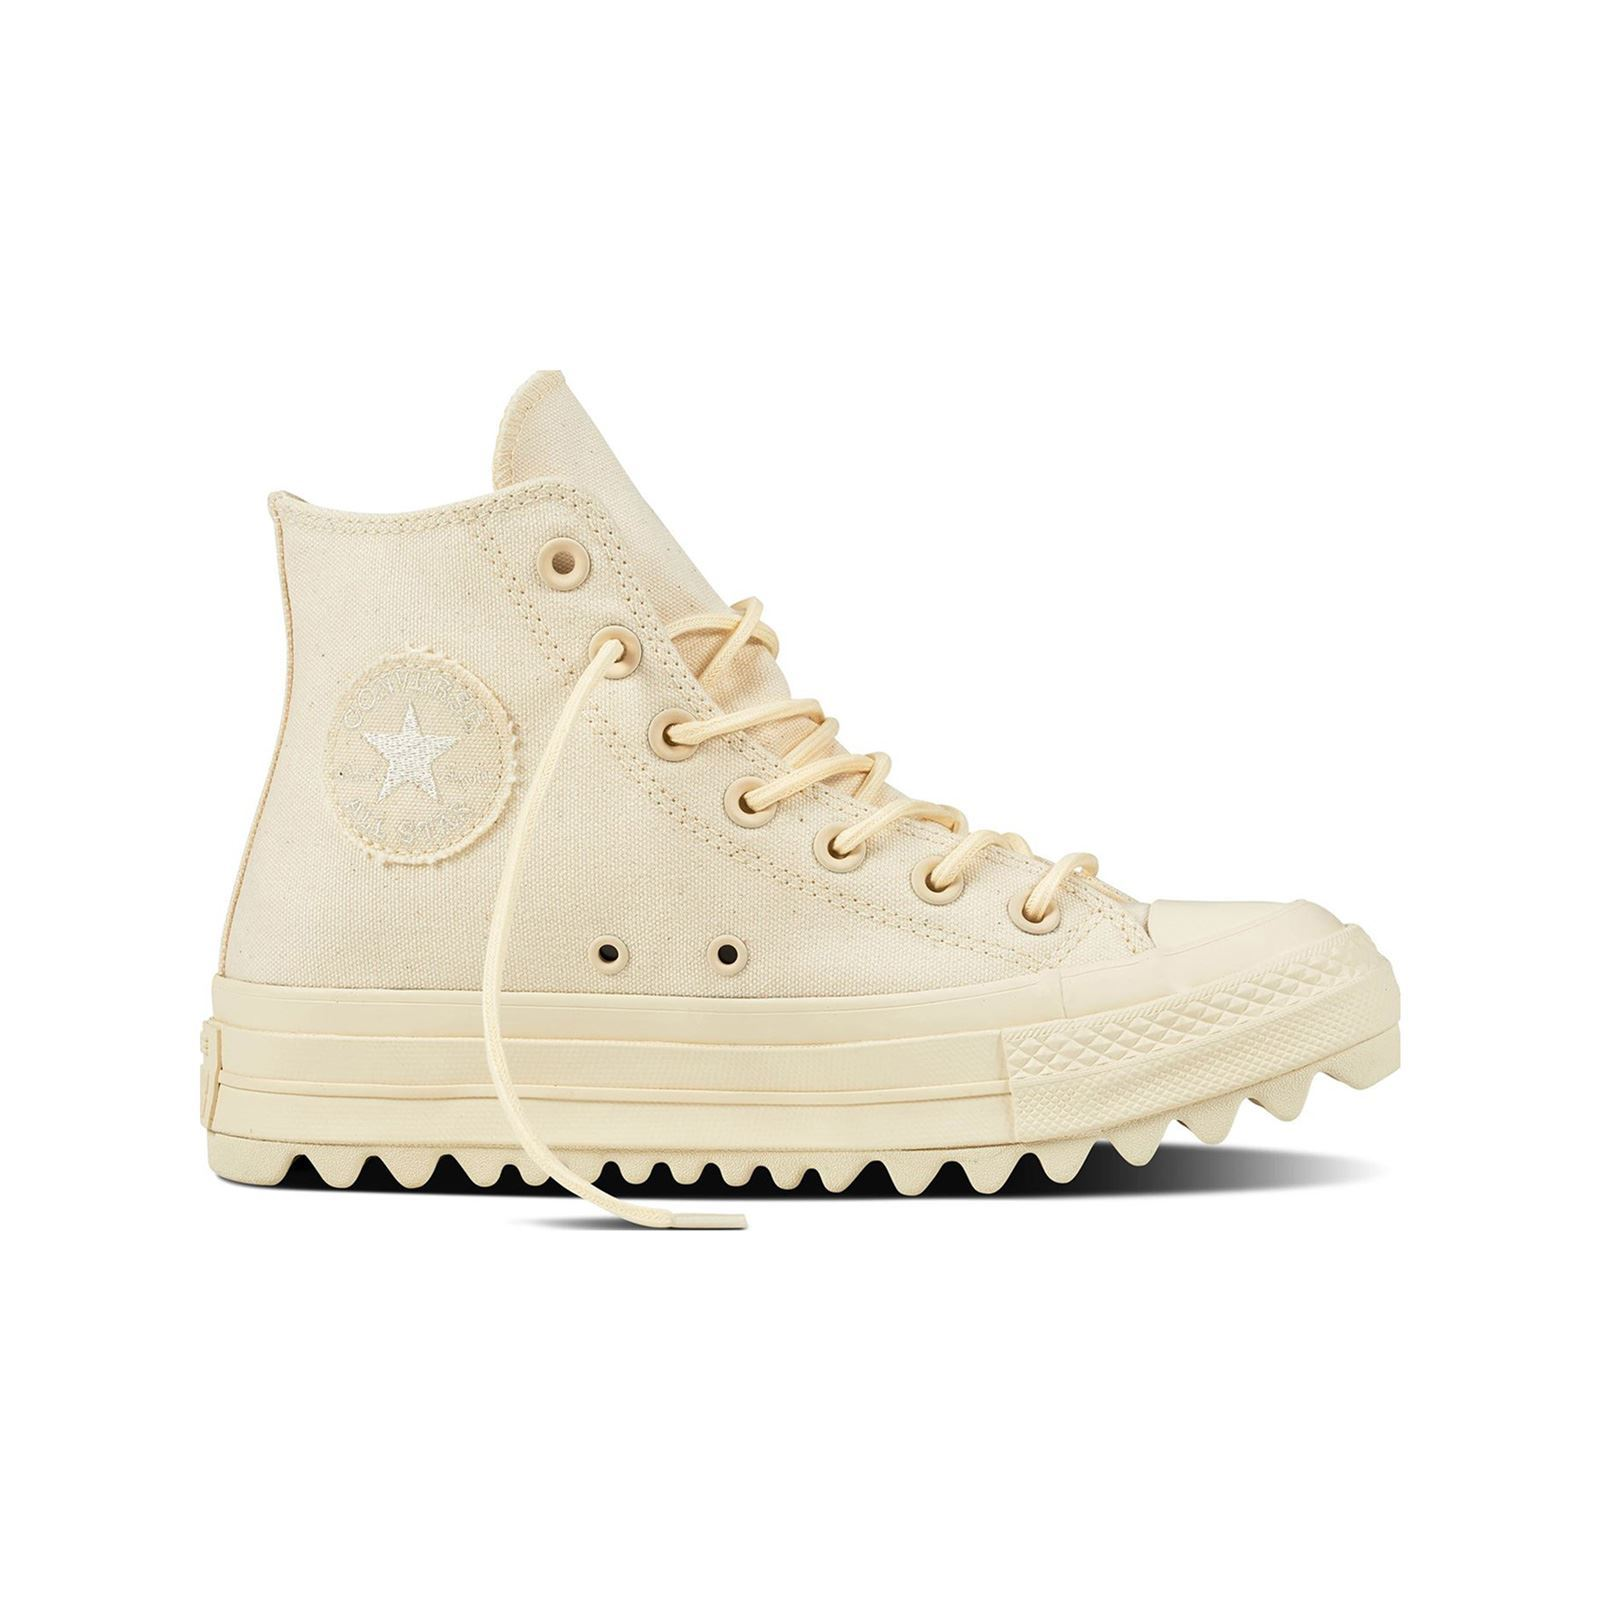 Lift Ripple Hi W chaussures noirConverse q0Th59